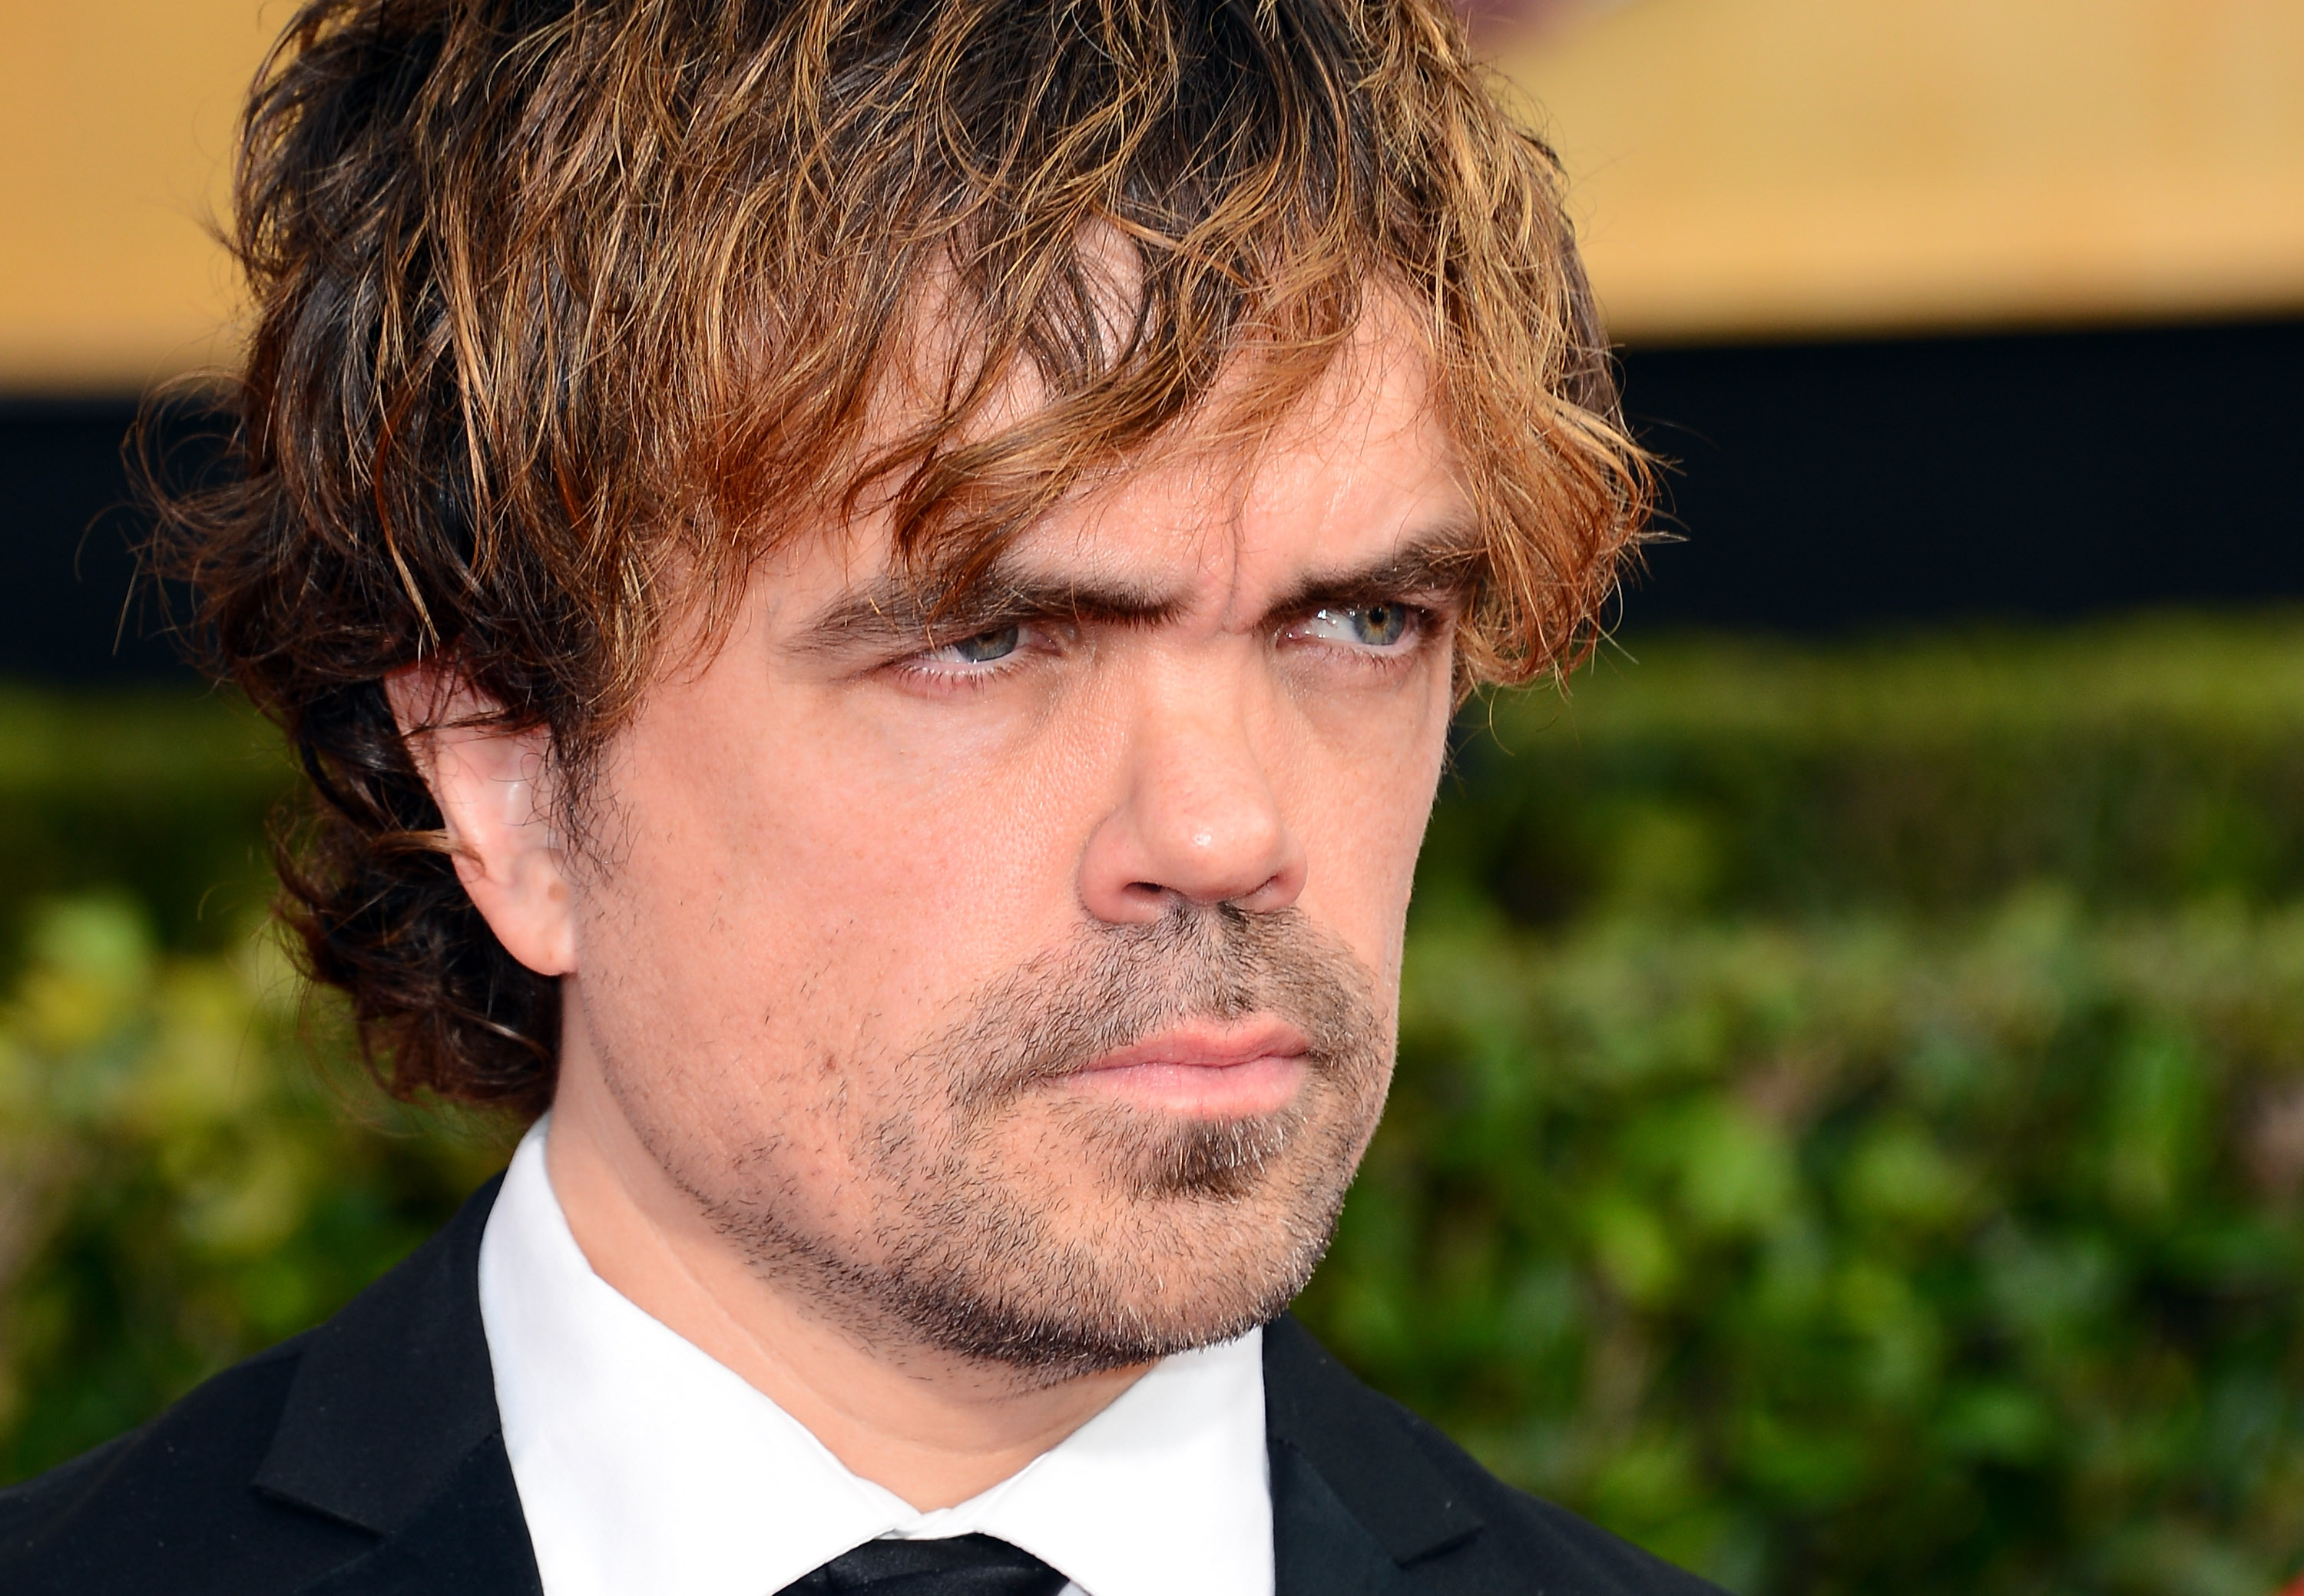 Peter Dinklage attends the 20th Annual Screen Actors Guild Awards at The Shrine Auditorium on January 18, 2014 in Los Angeles, California.